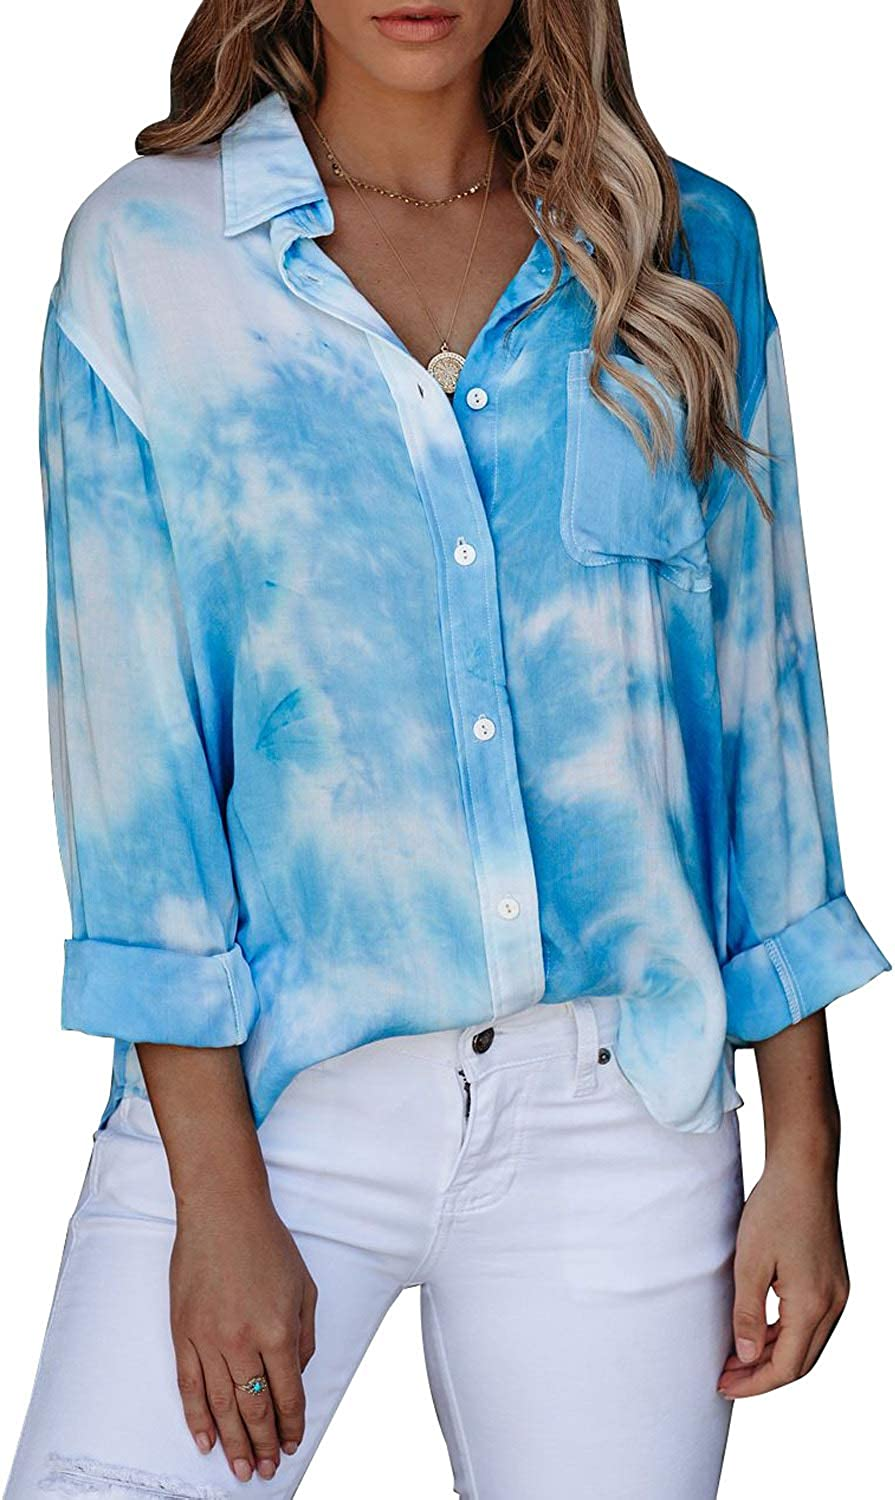 Astylish Women Casual Tie Dye Cuffed 3 4 Sleeve Button up V Neck Blouse Tops